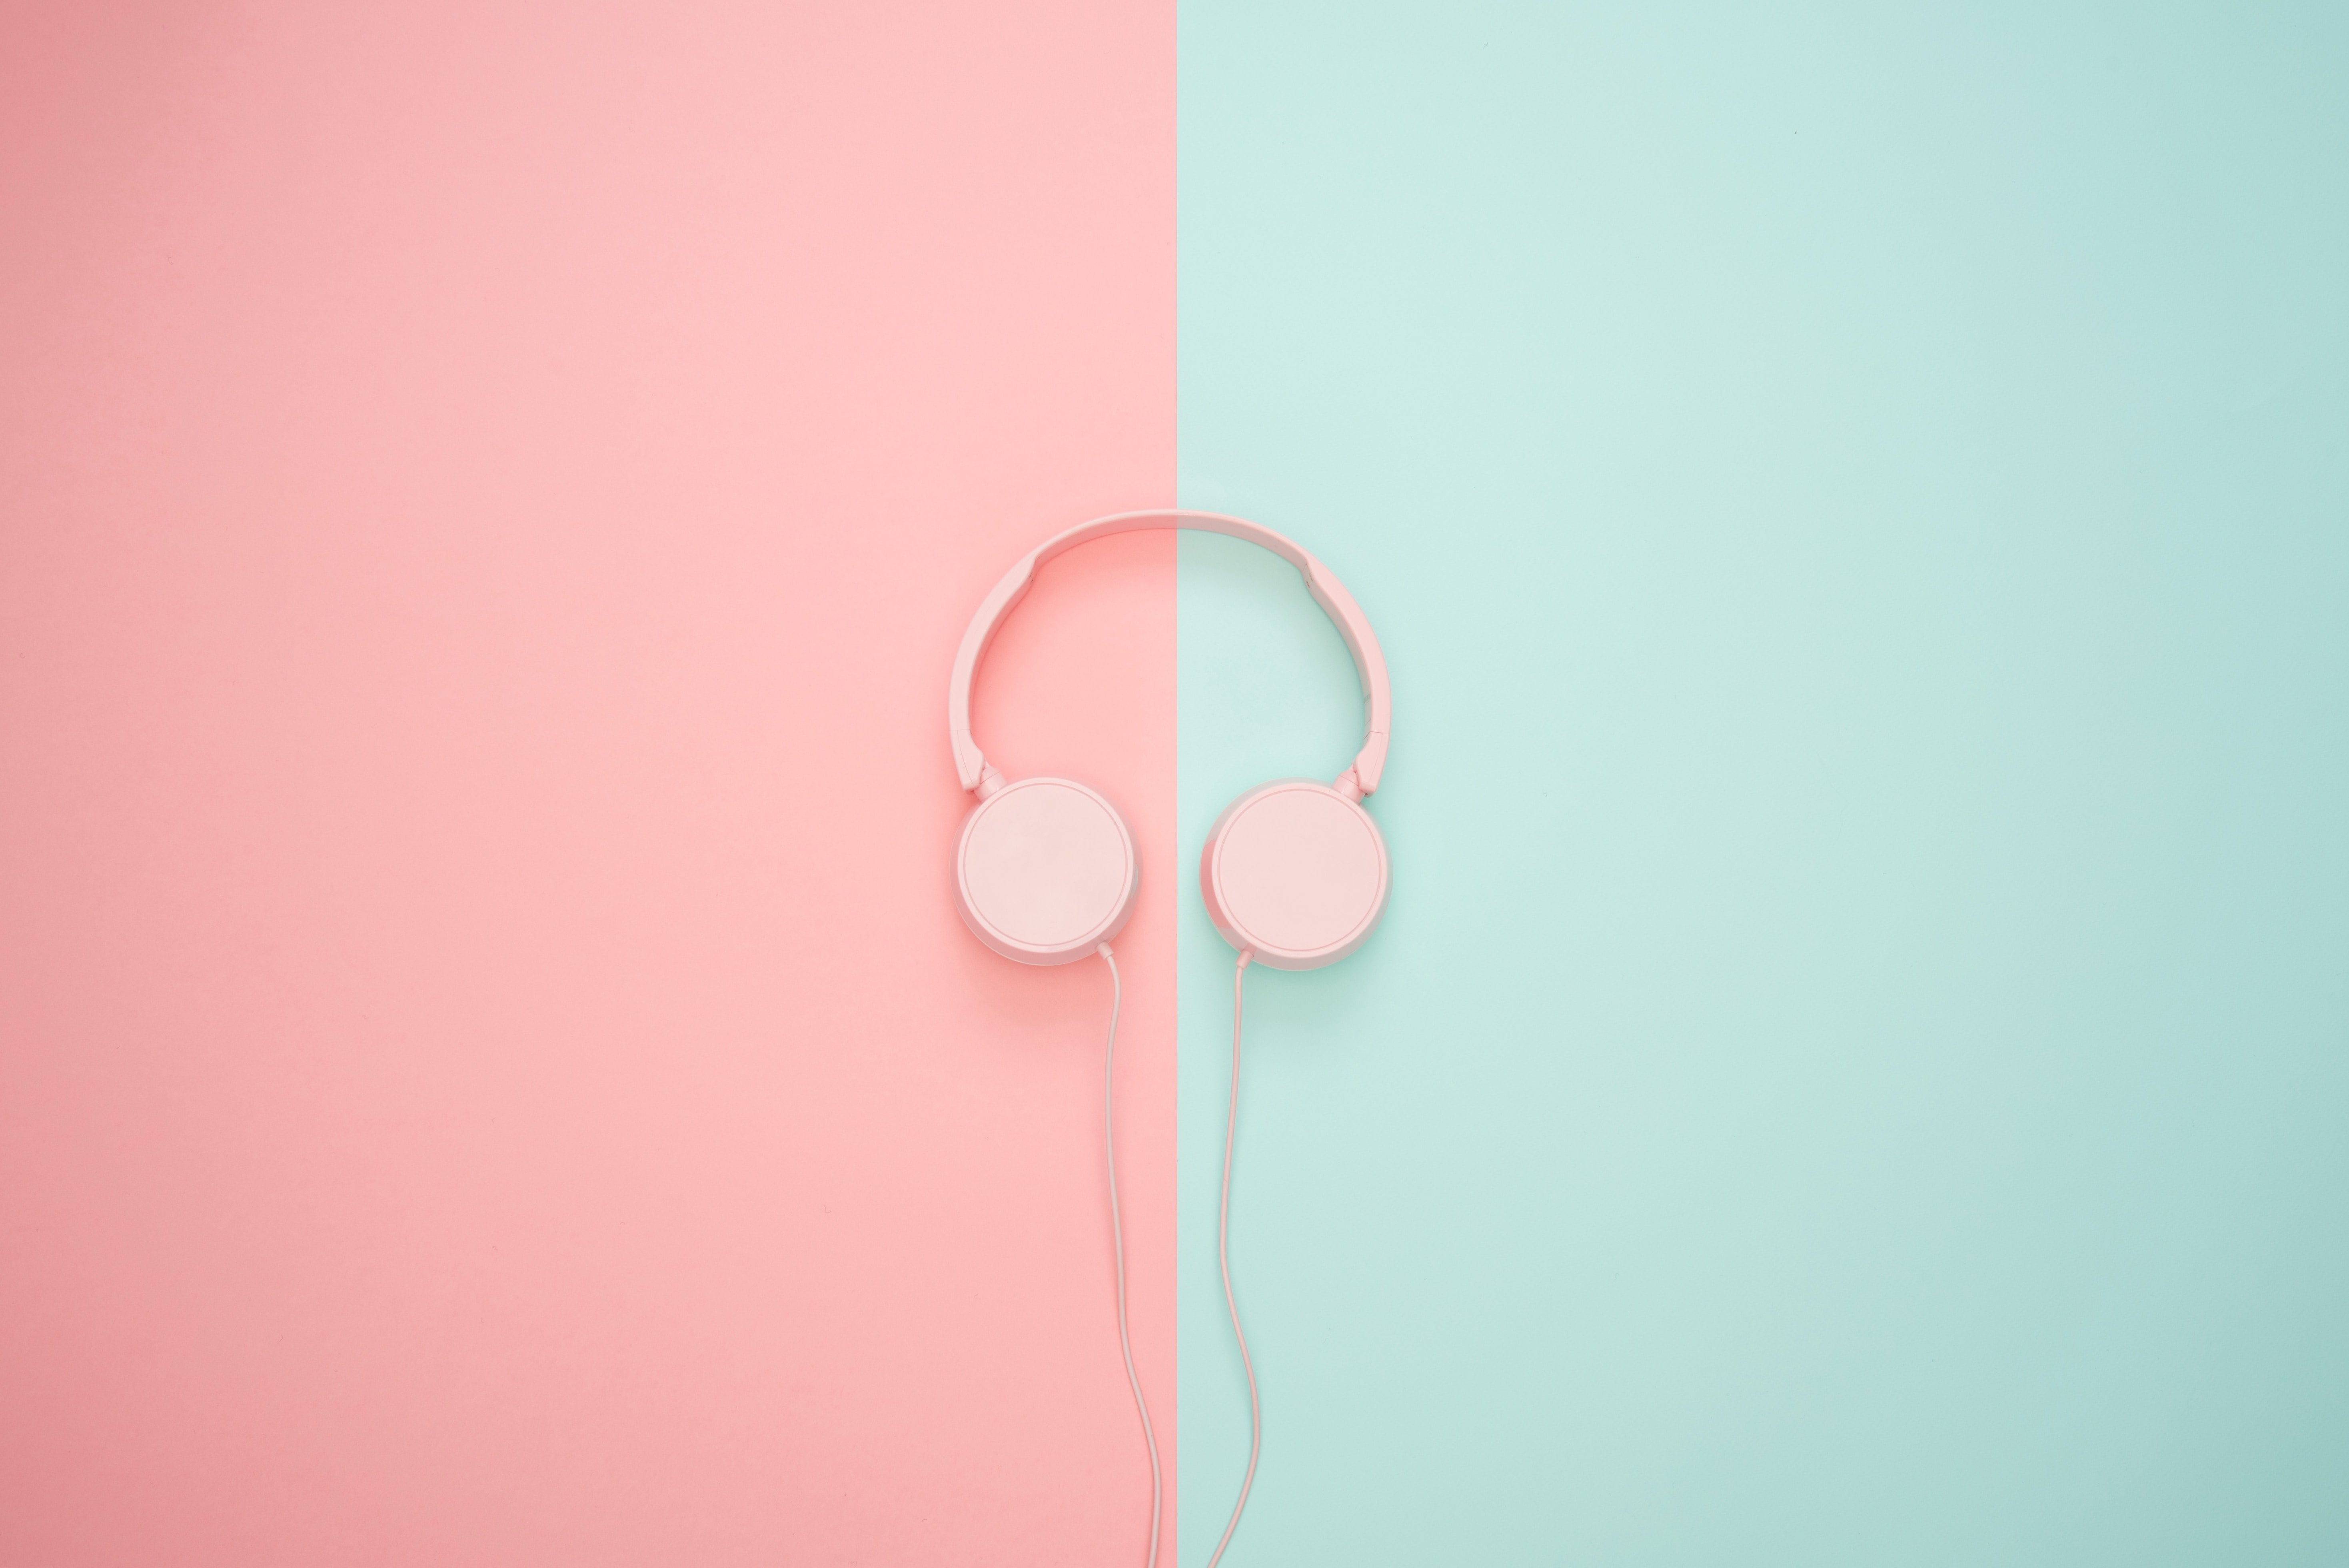 Seven Ear Training Tips from Someone Who Has Struggled with It